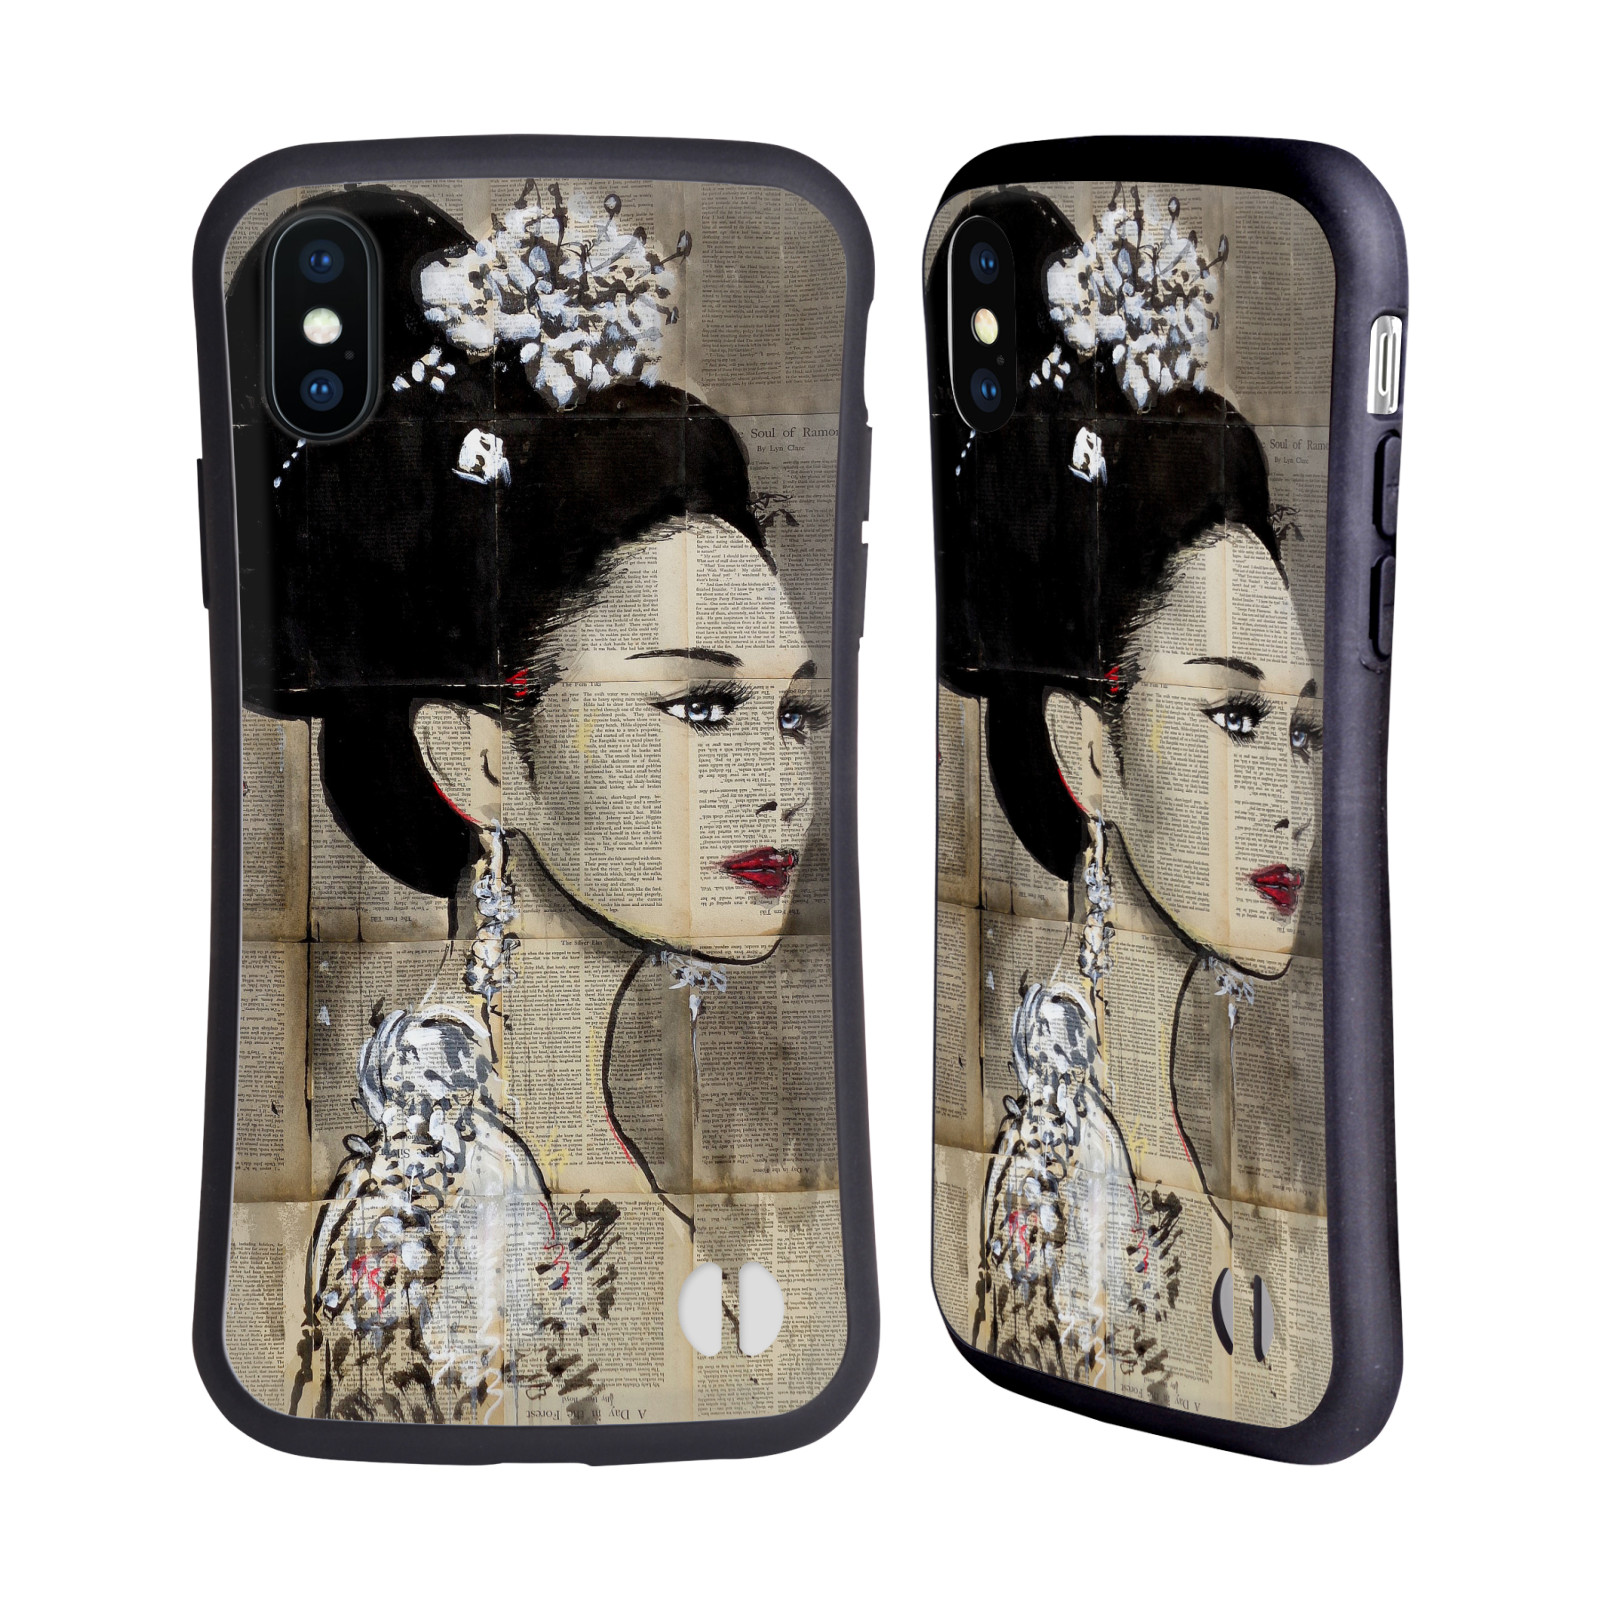 OFFICIAL-LOUIJOVERART-LADY-PORTRAITS-HYBRID-CASE-FOR-APPLE-iPHONES-PHONES